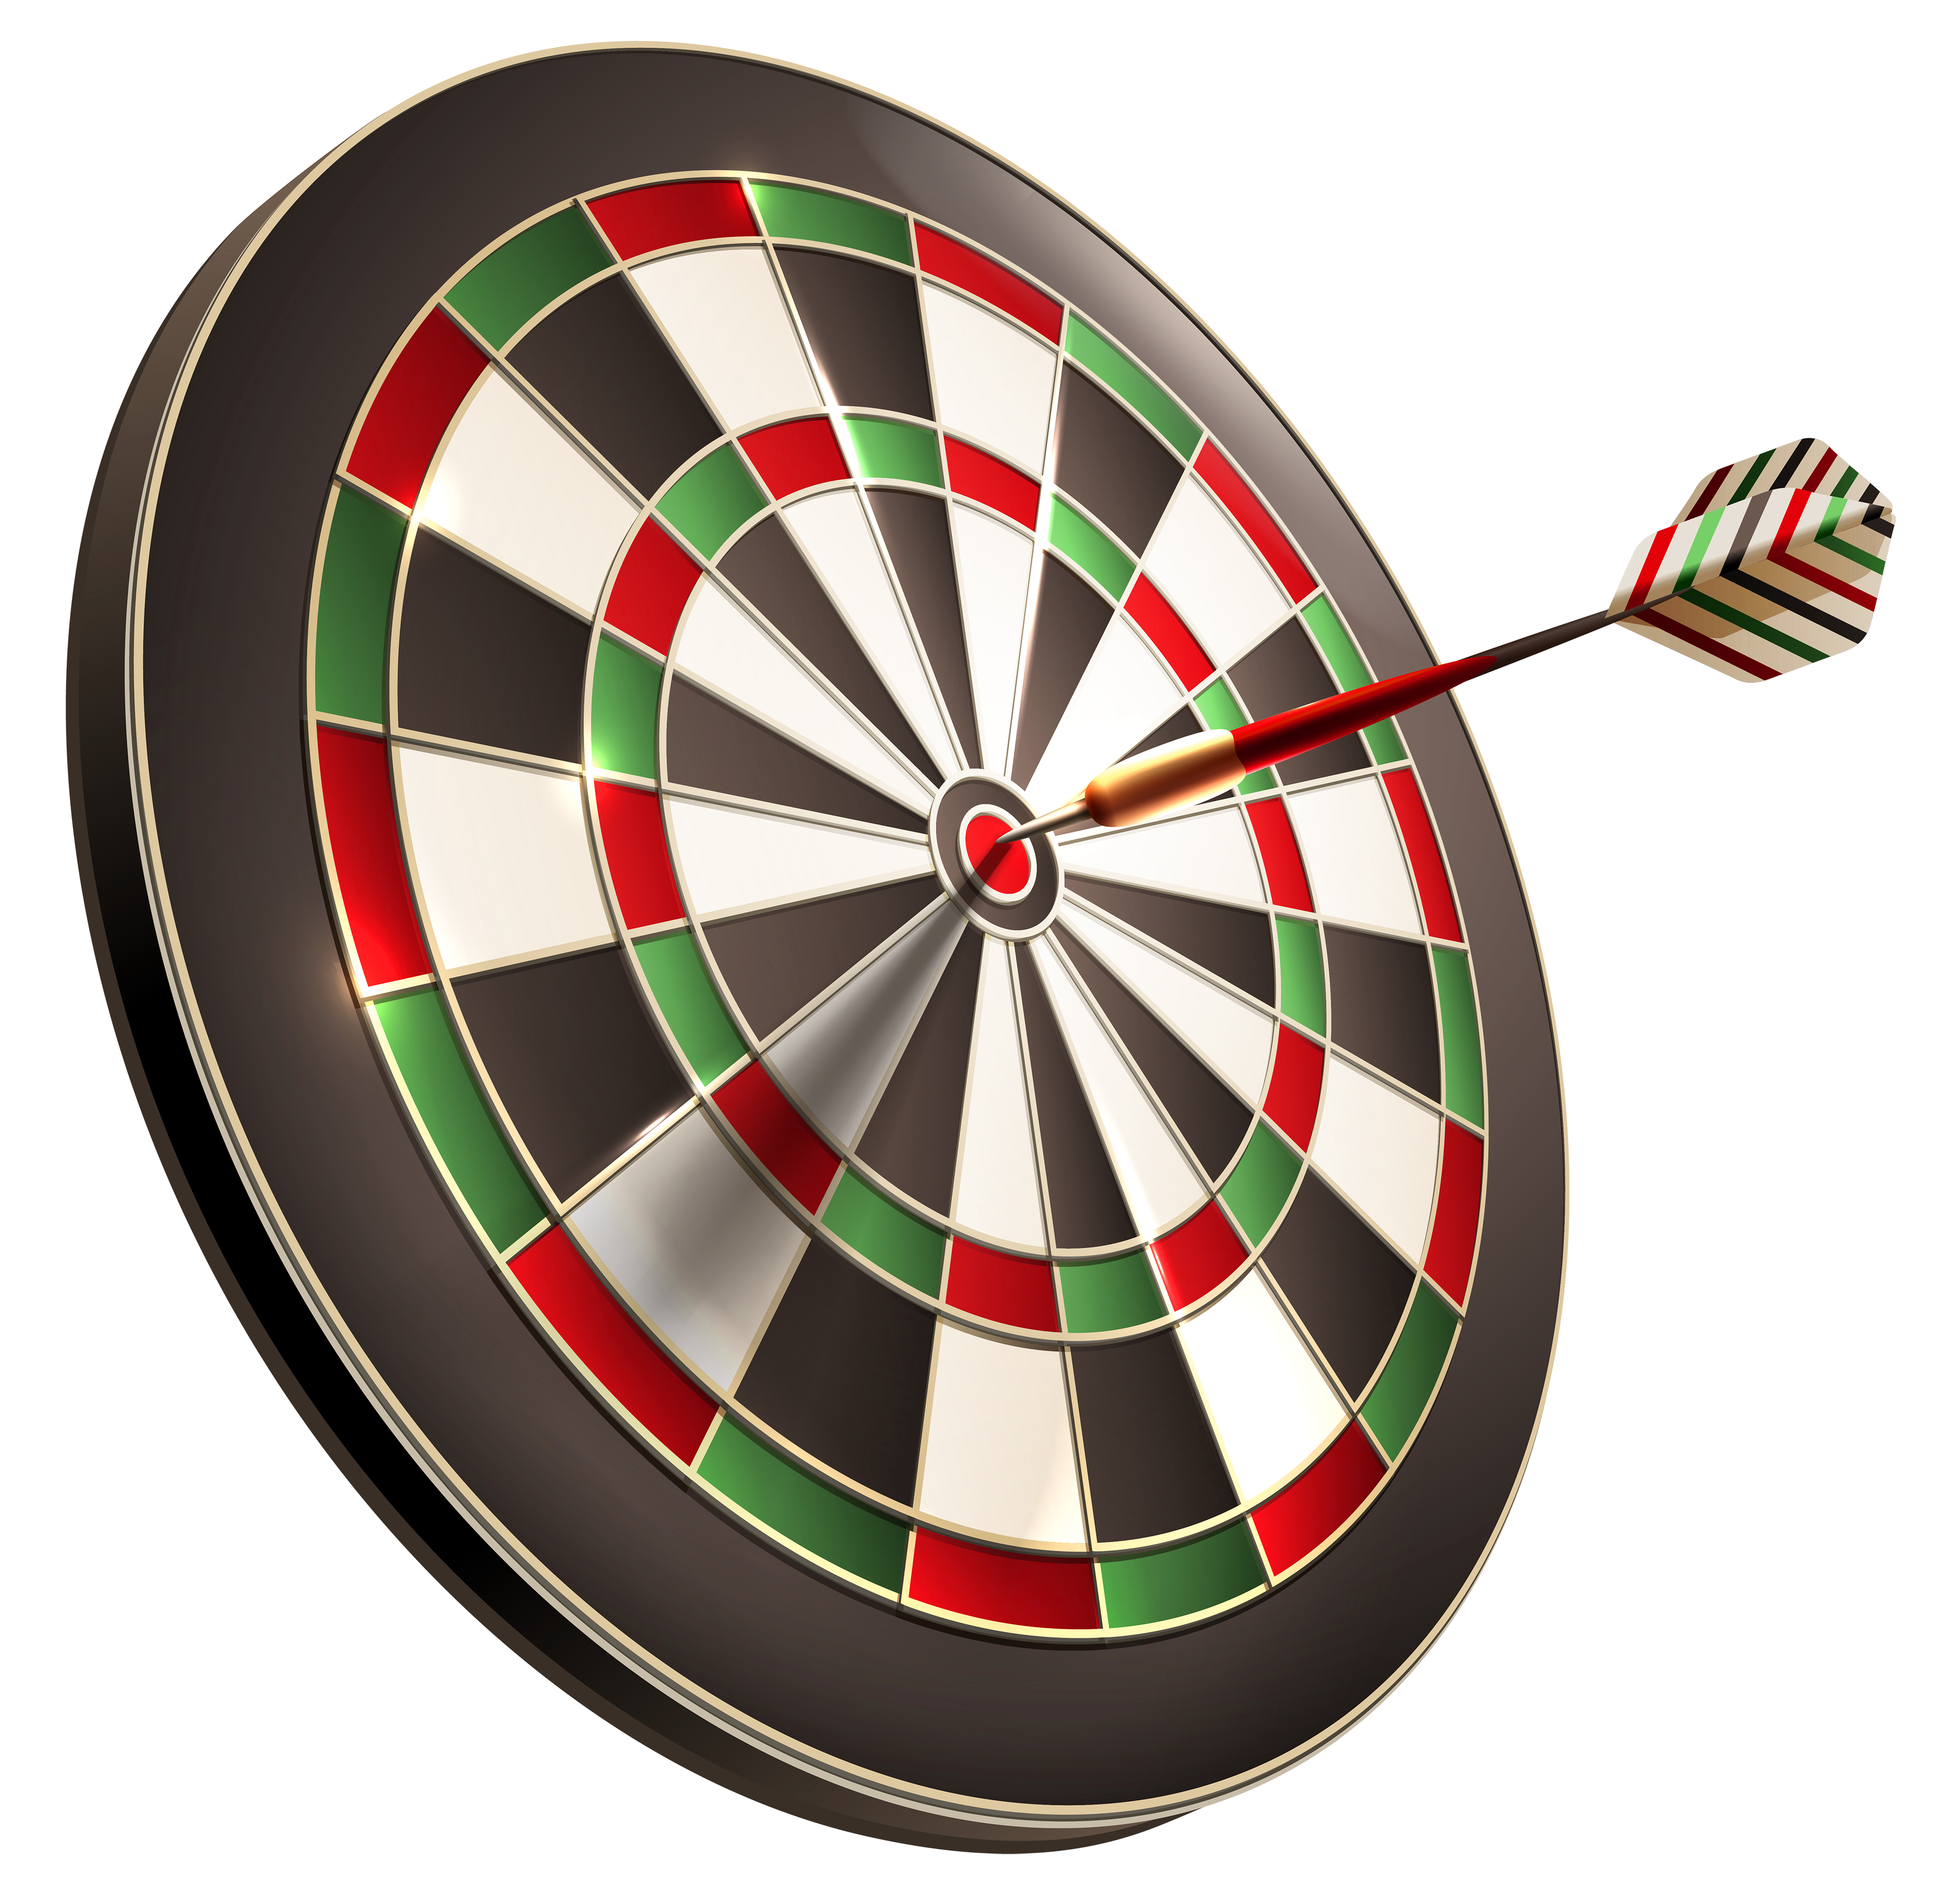 Playing dart clipart.